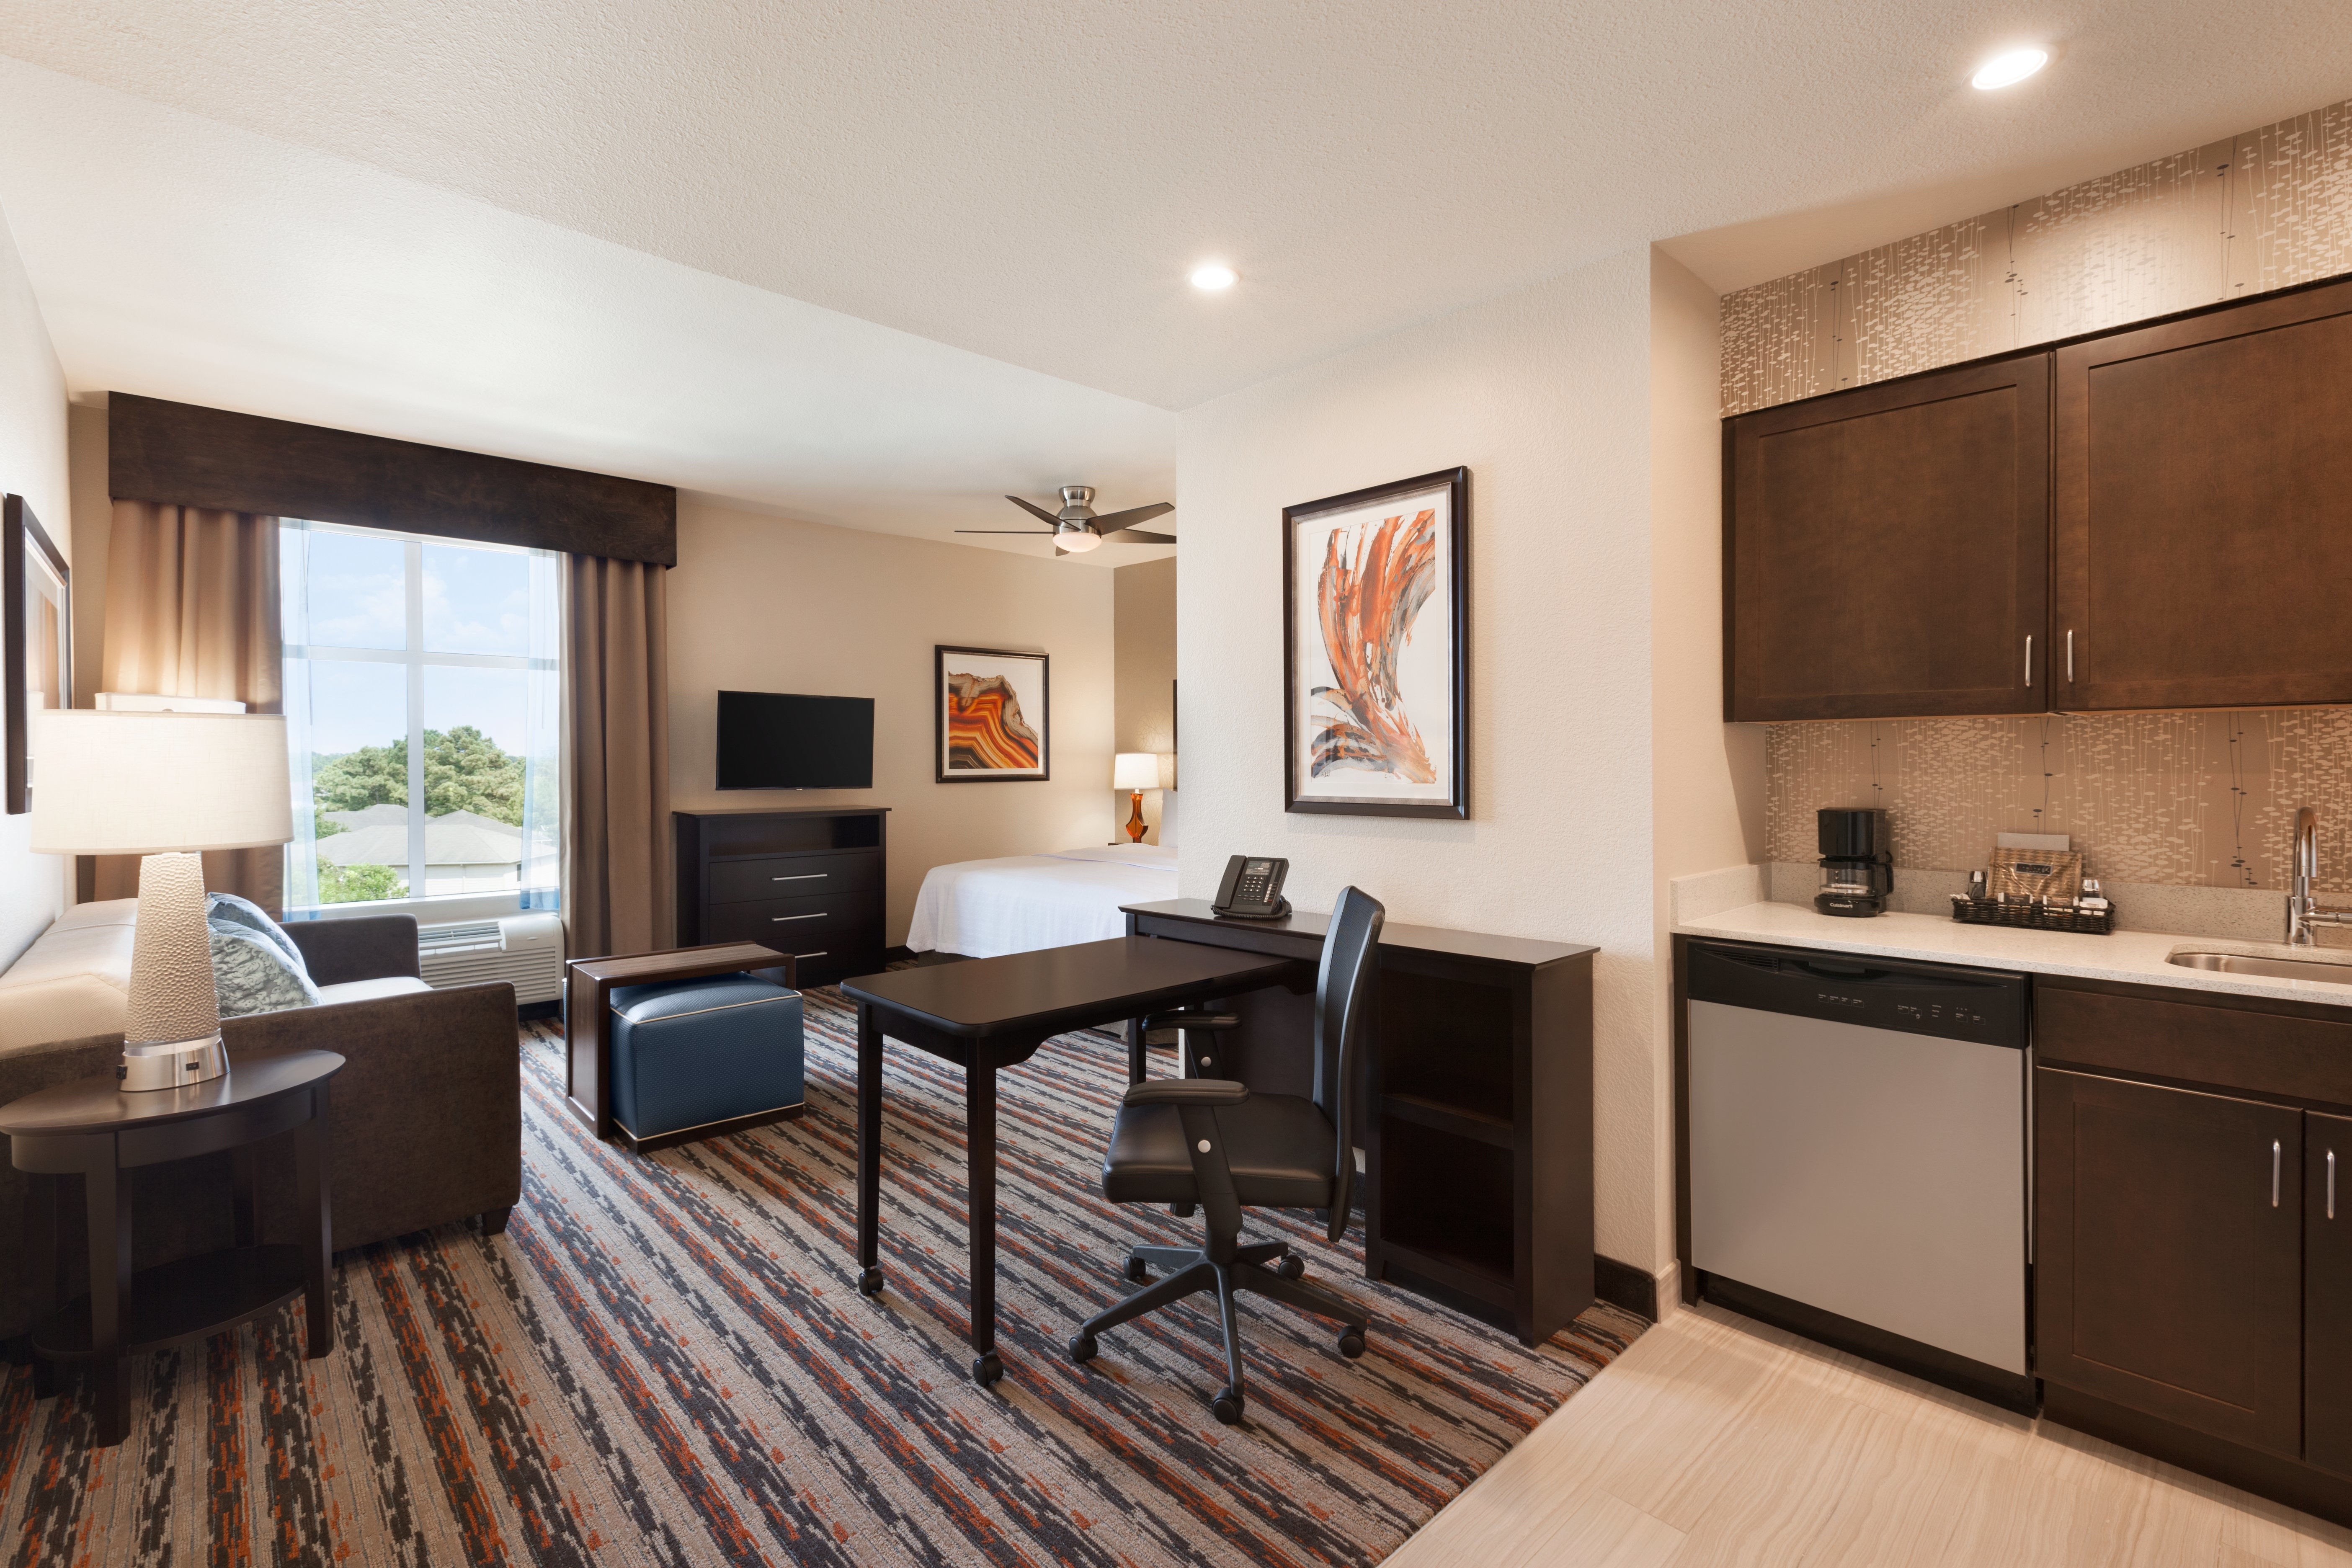 Homewood Suites by Hilton North Houston/Spring image 1